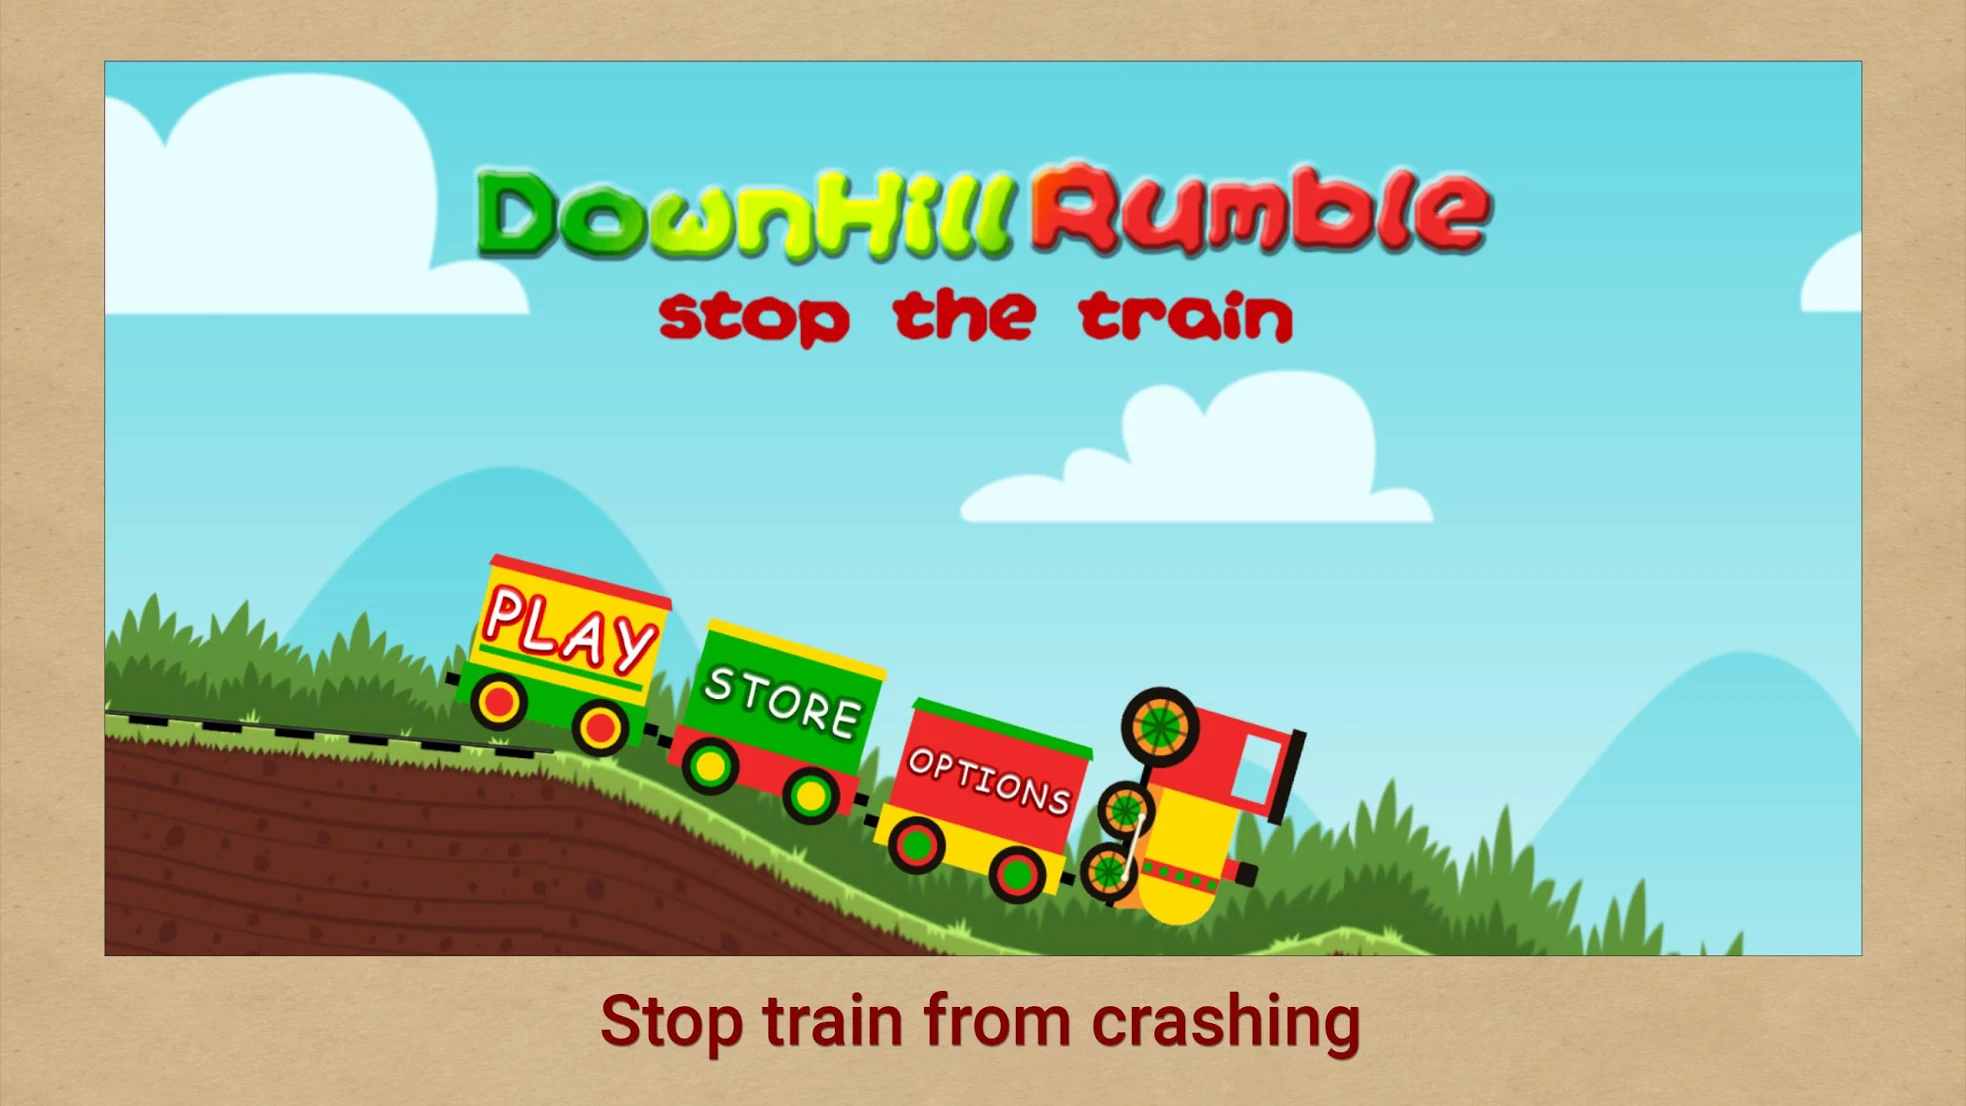 Downhill Rumble